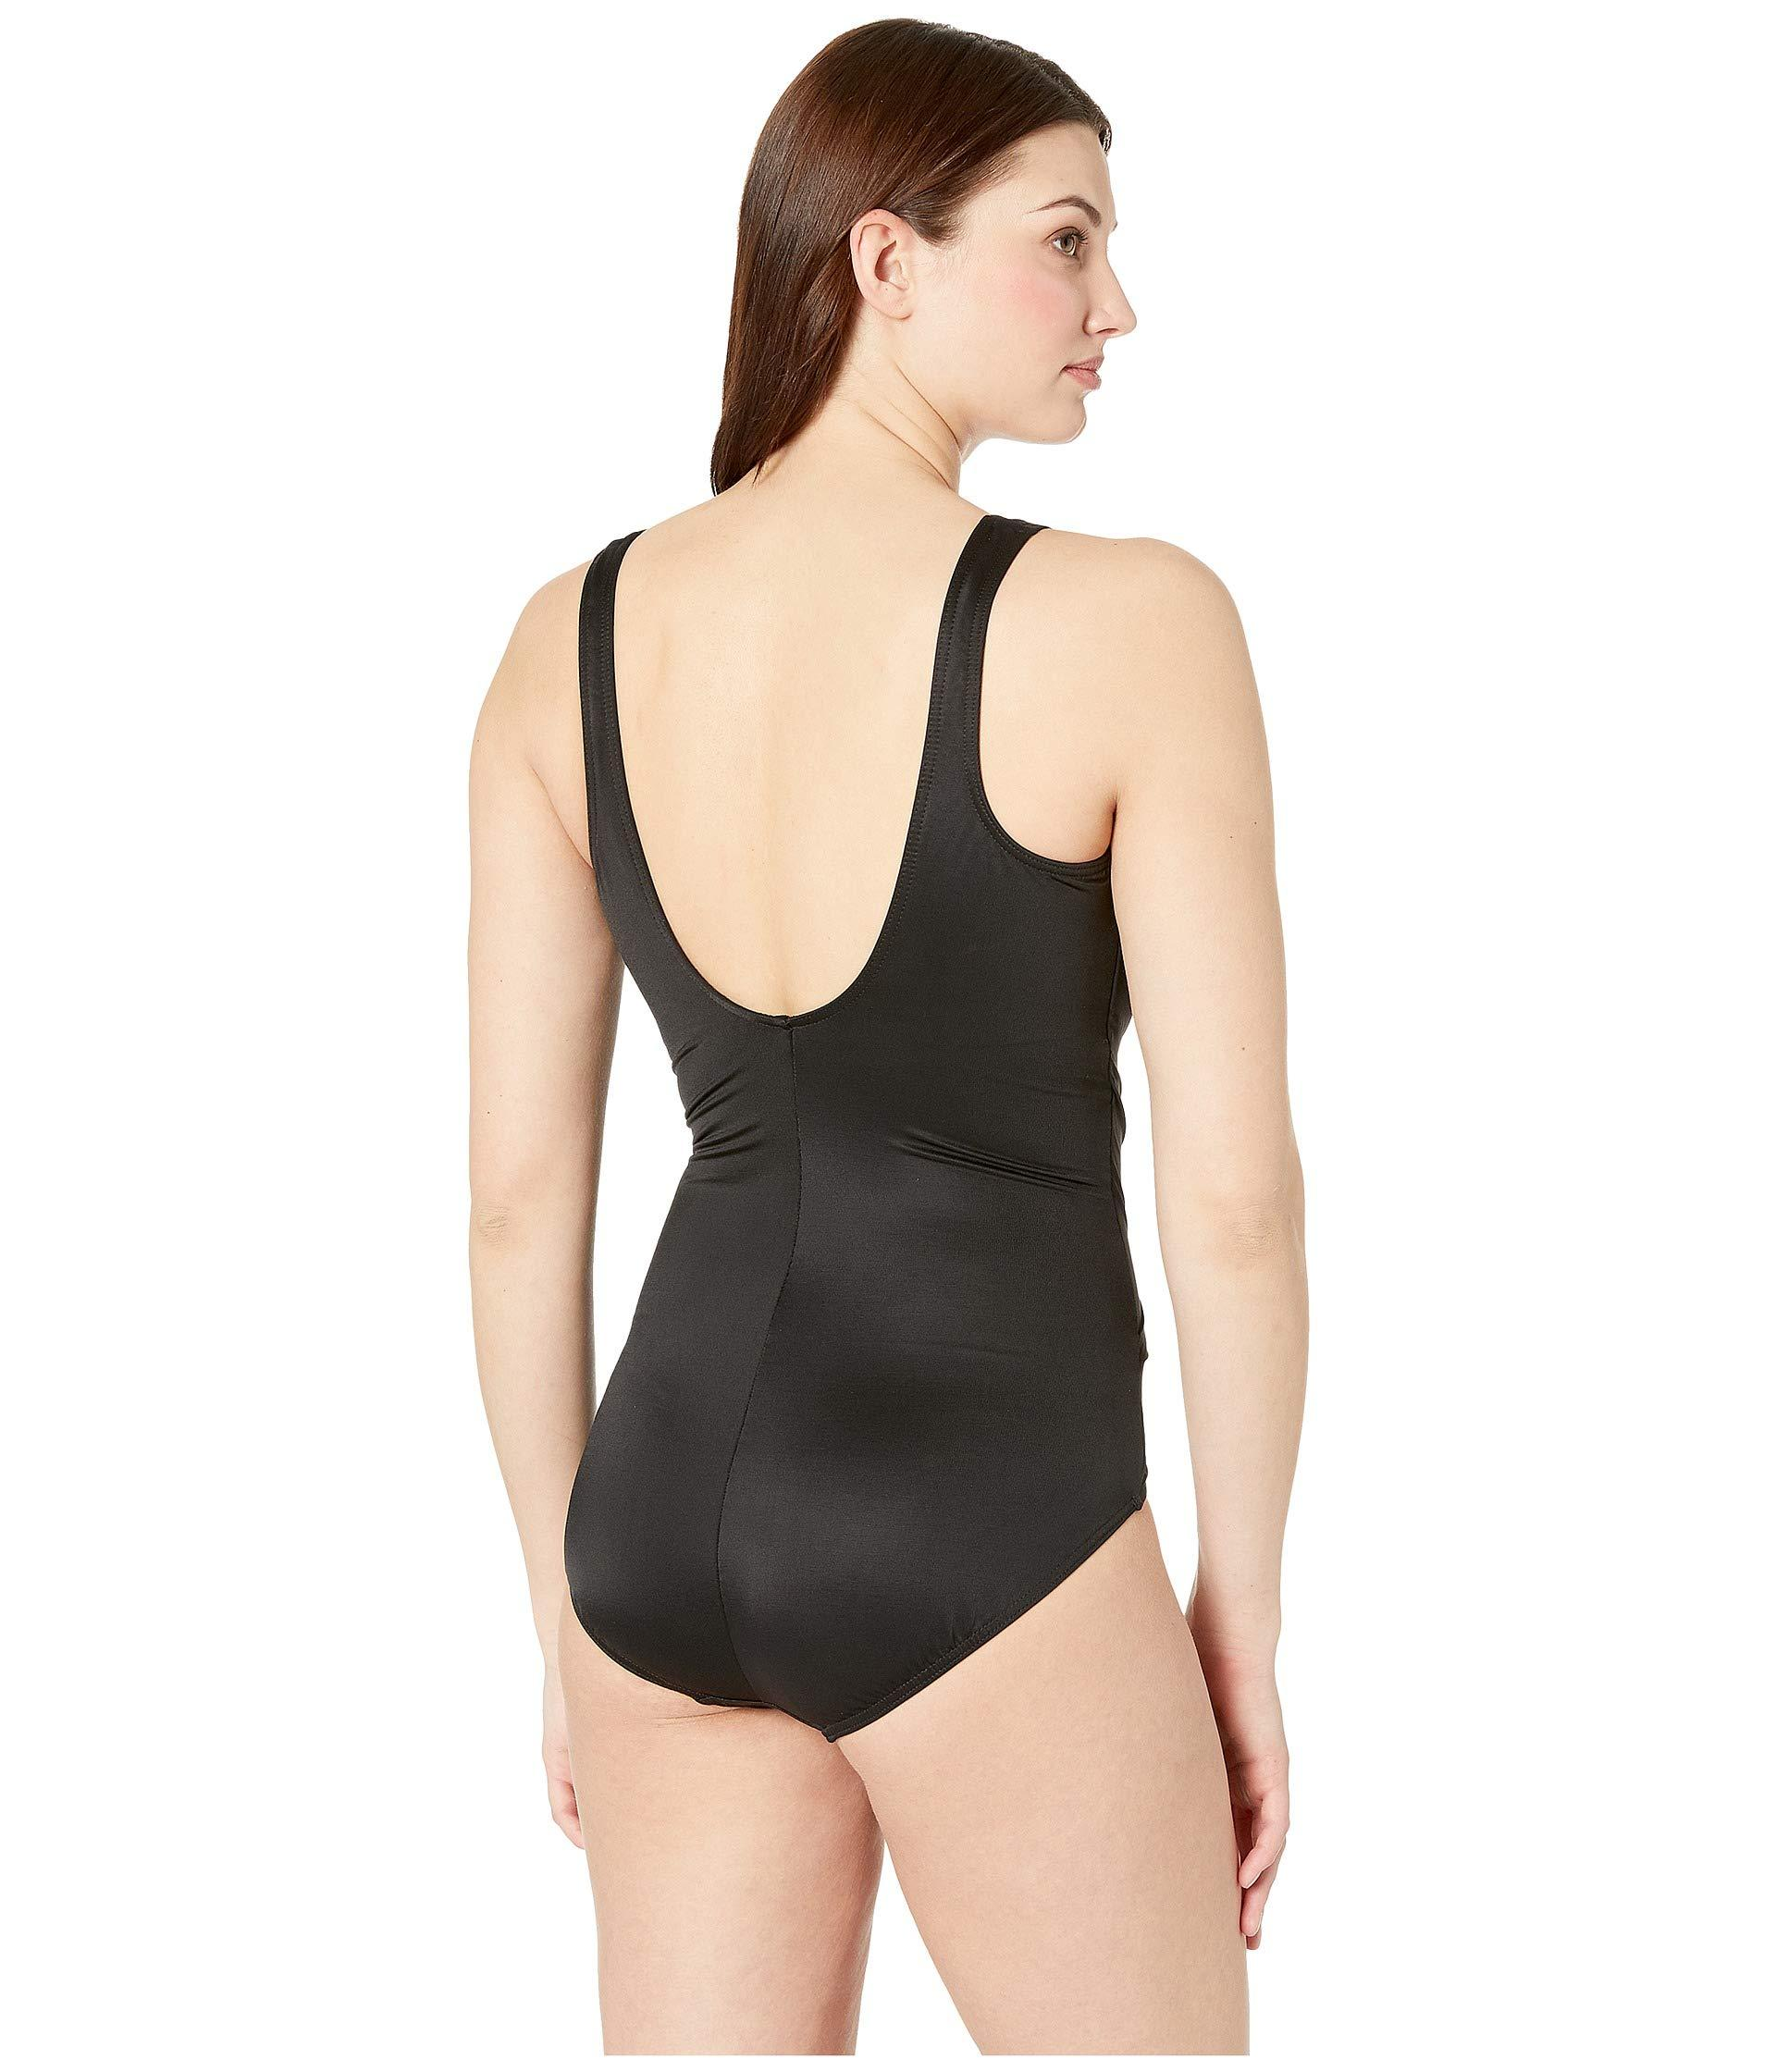 079d5c5d8ce Miraclesuit - Solid Dd-cup Oceanus One-piece (black) Women s Swimsuits One.  View fullscreen